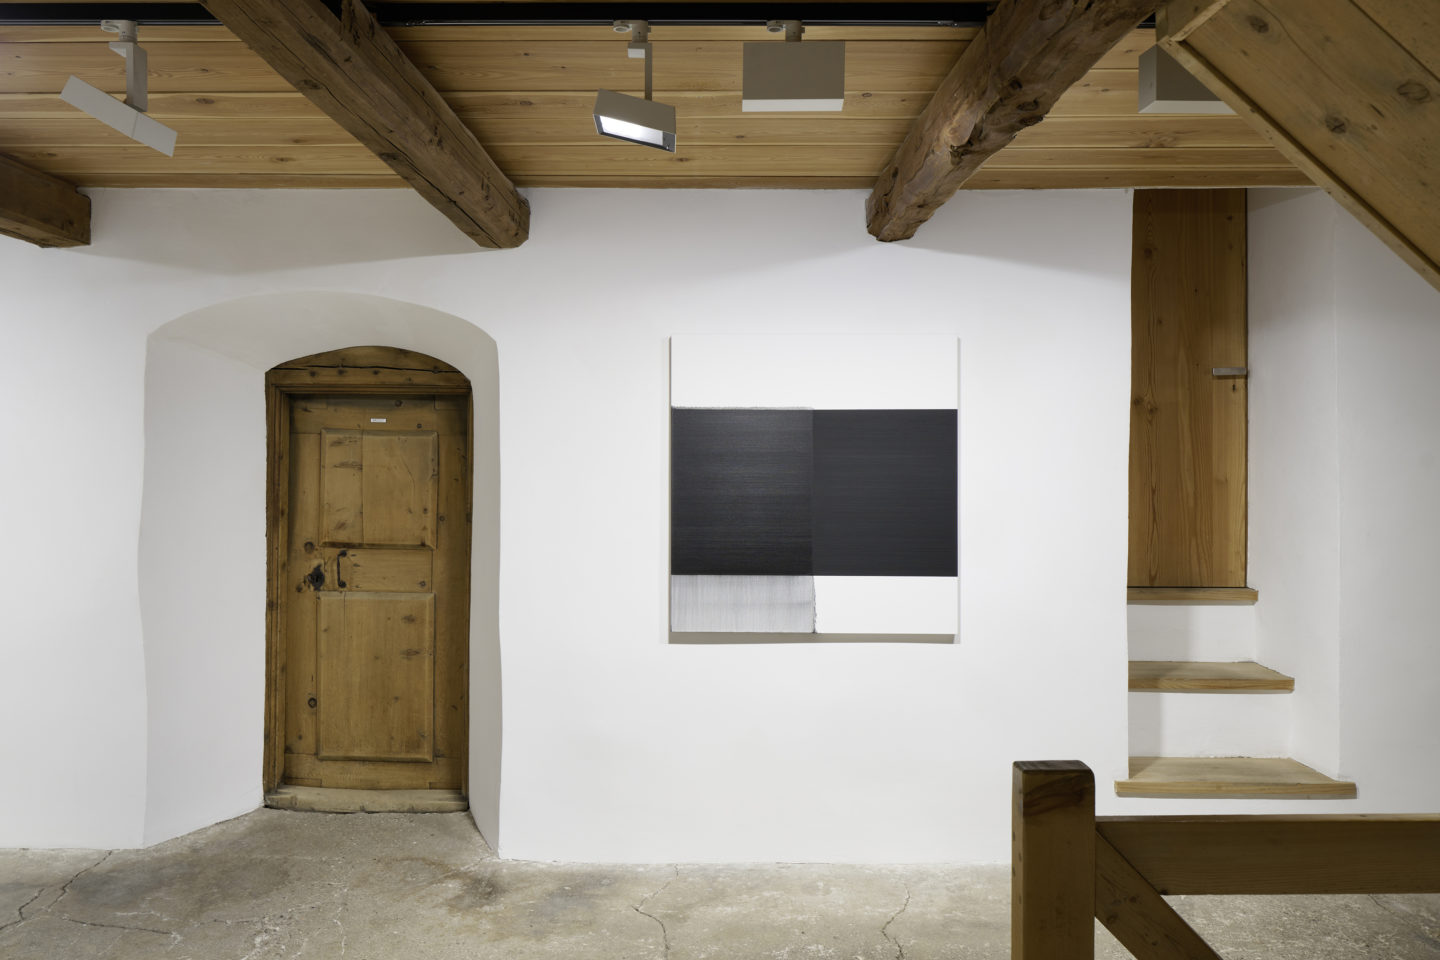 Installation View Callum Innes «Exposed Paintng Vine Black, 2006» at Galerie Tschudi, Zuoz / Photo: Ralph Feiner / Courtesy: the artist and Galerie Tschudi, Zuoz